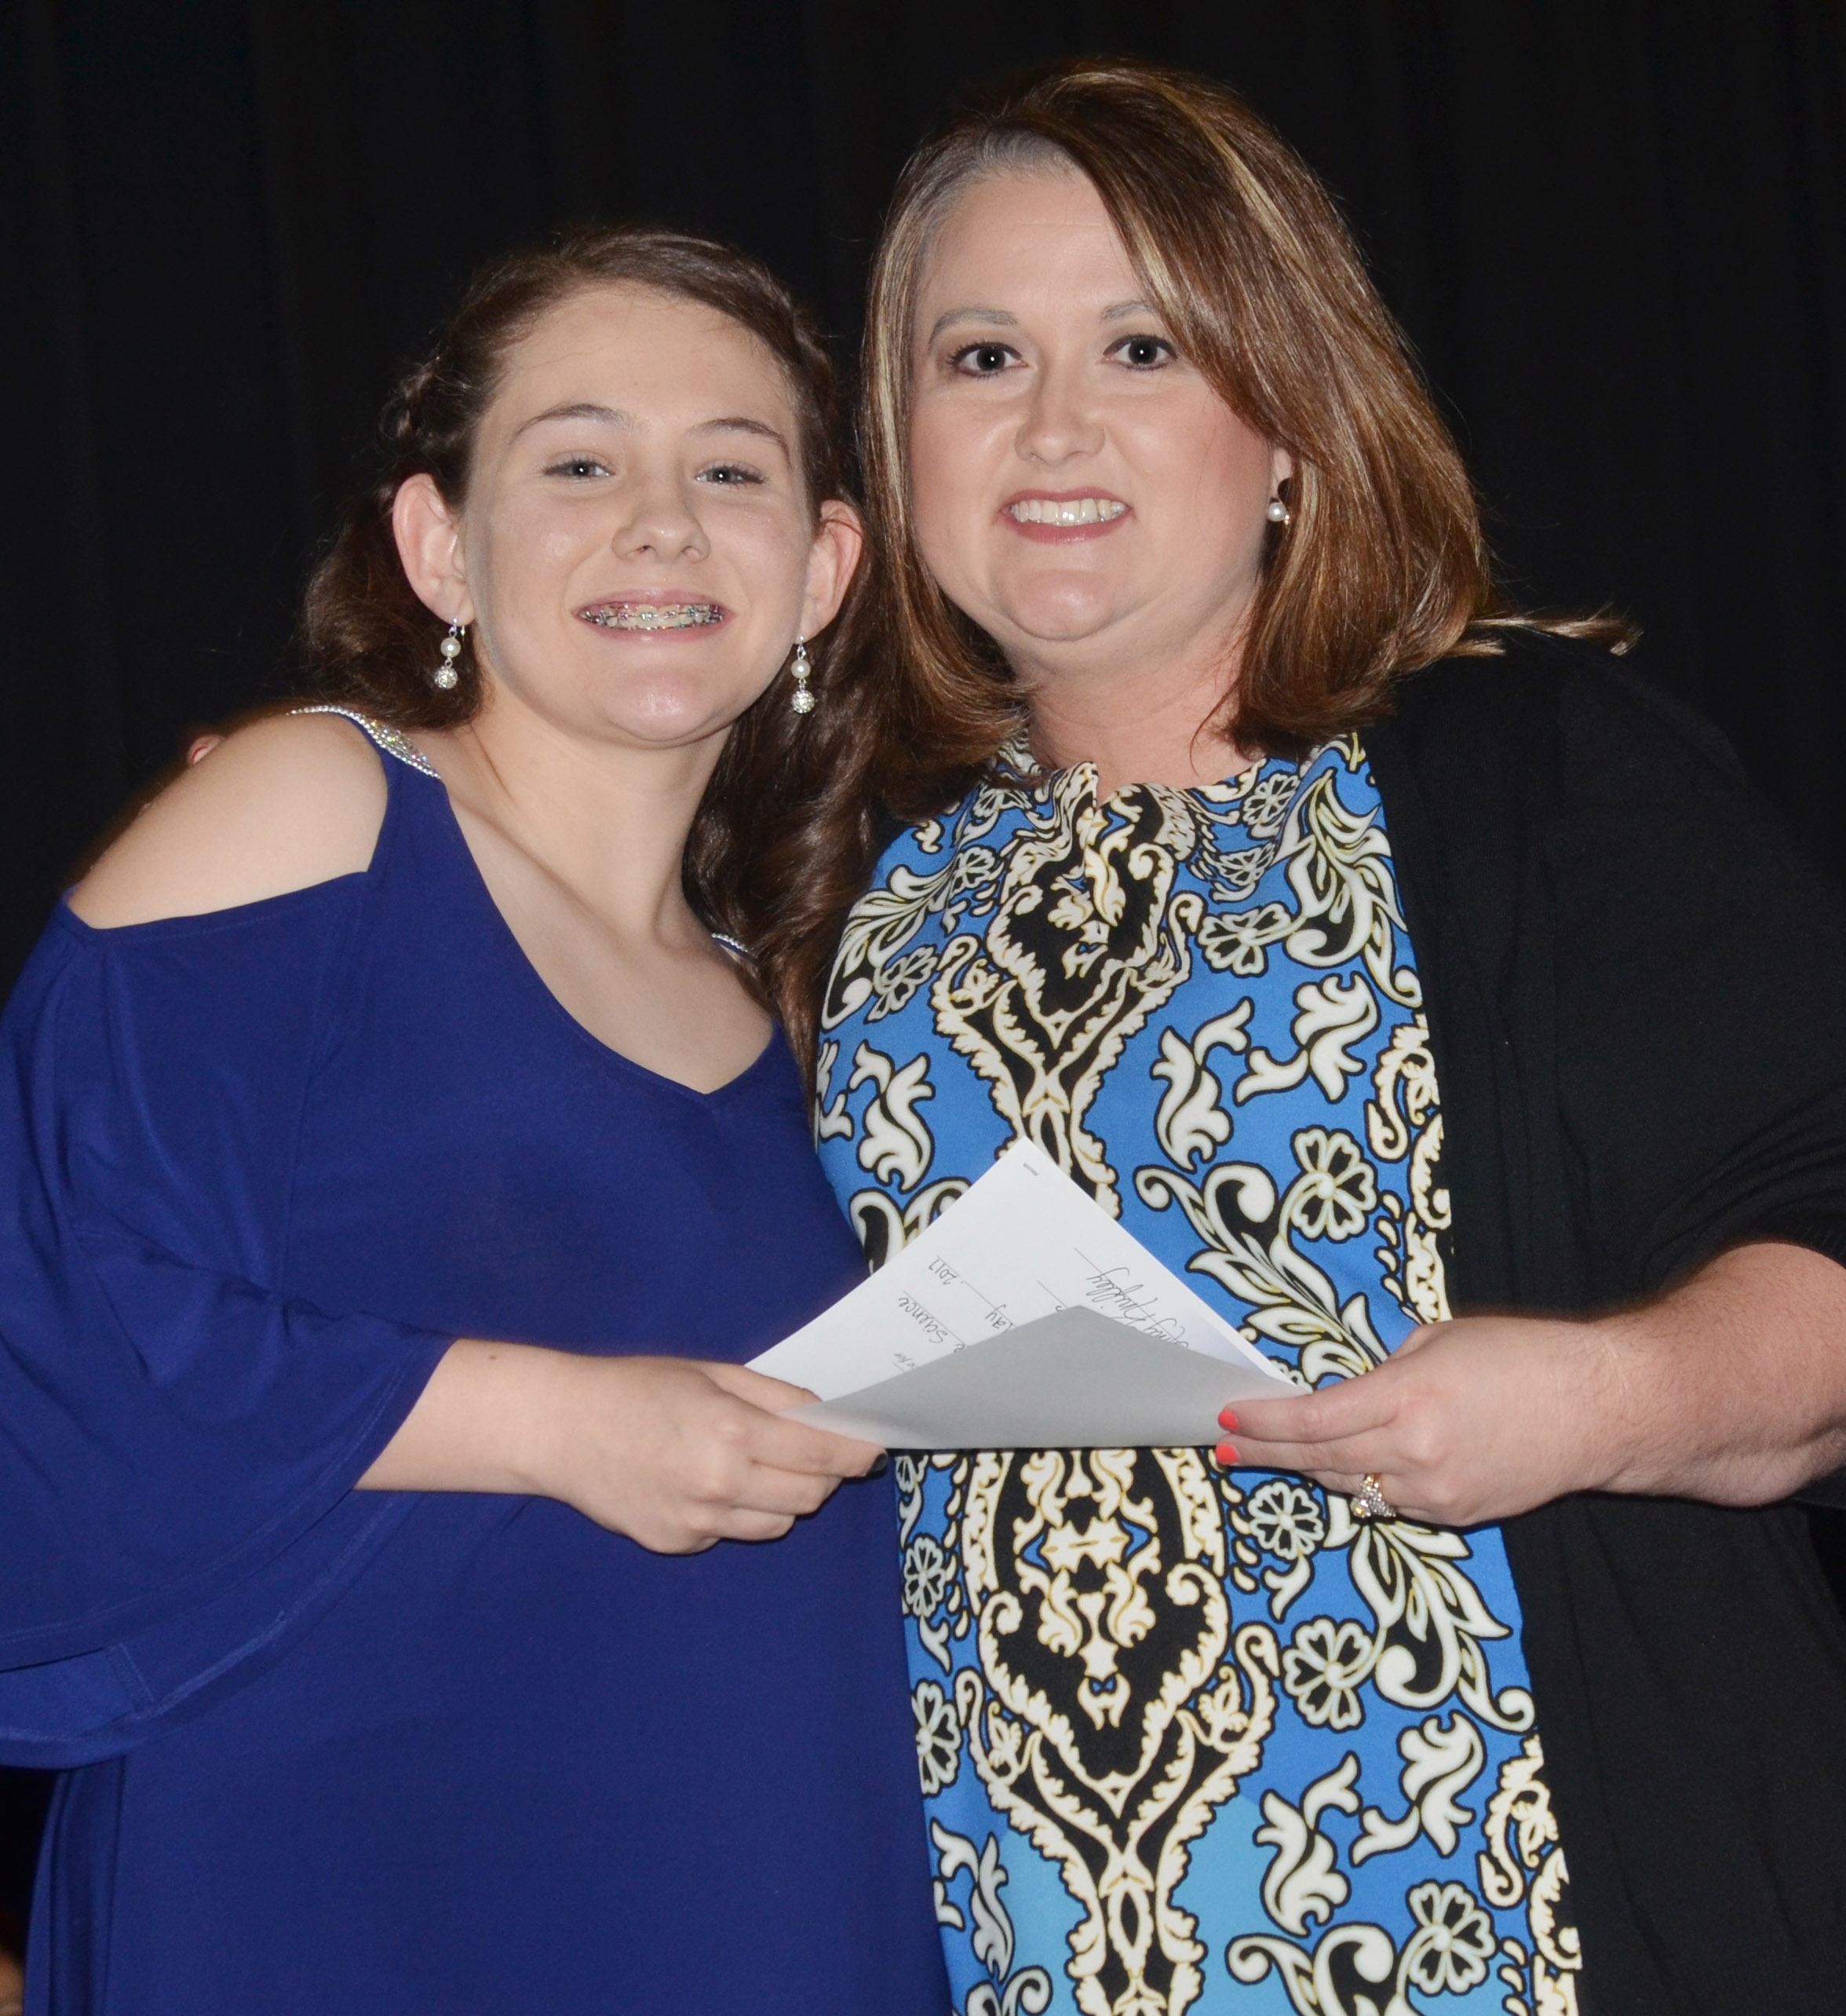 CMS eighth-grader Kaylee Reynolds receives the science award from teacher Amy Knifley.